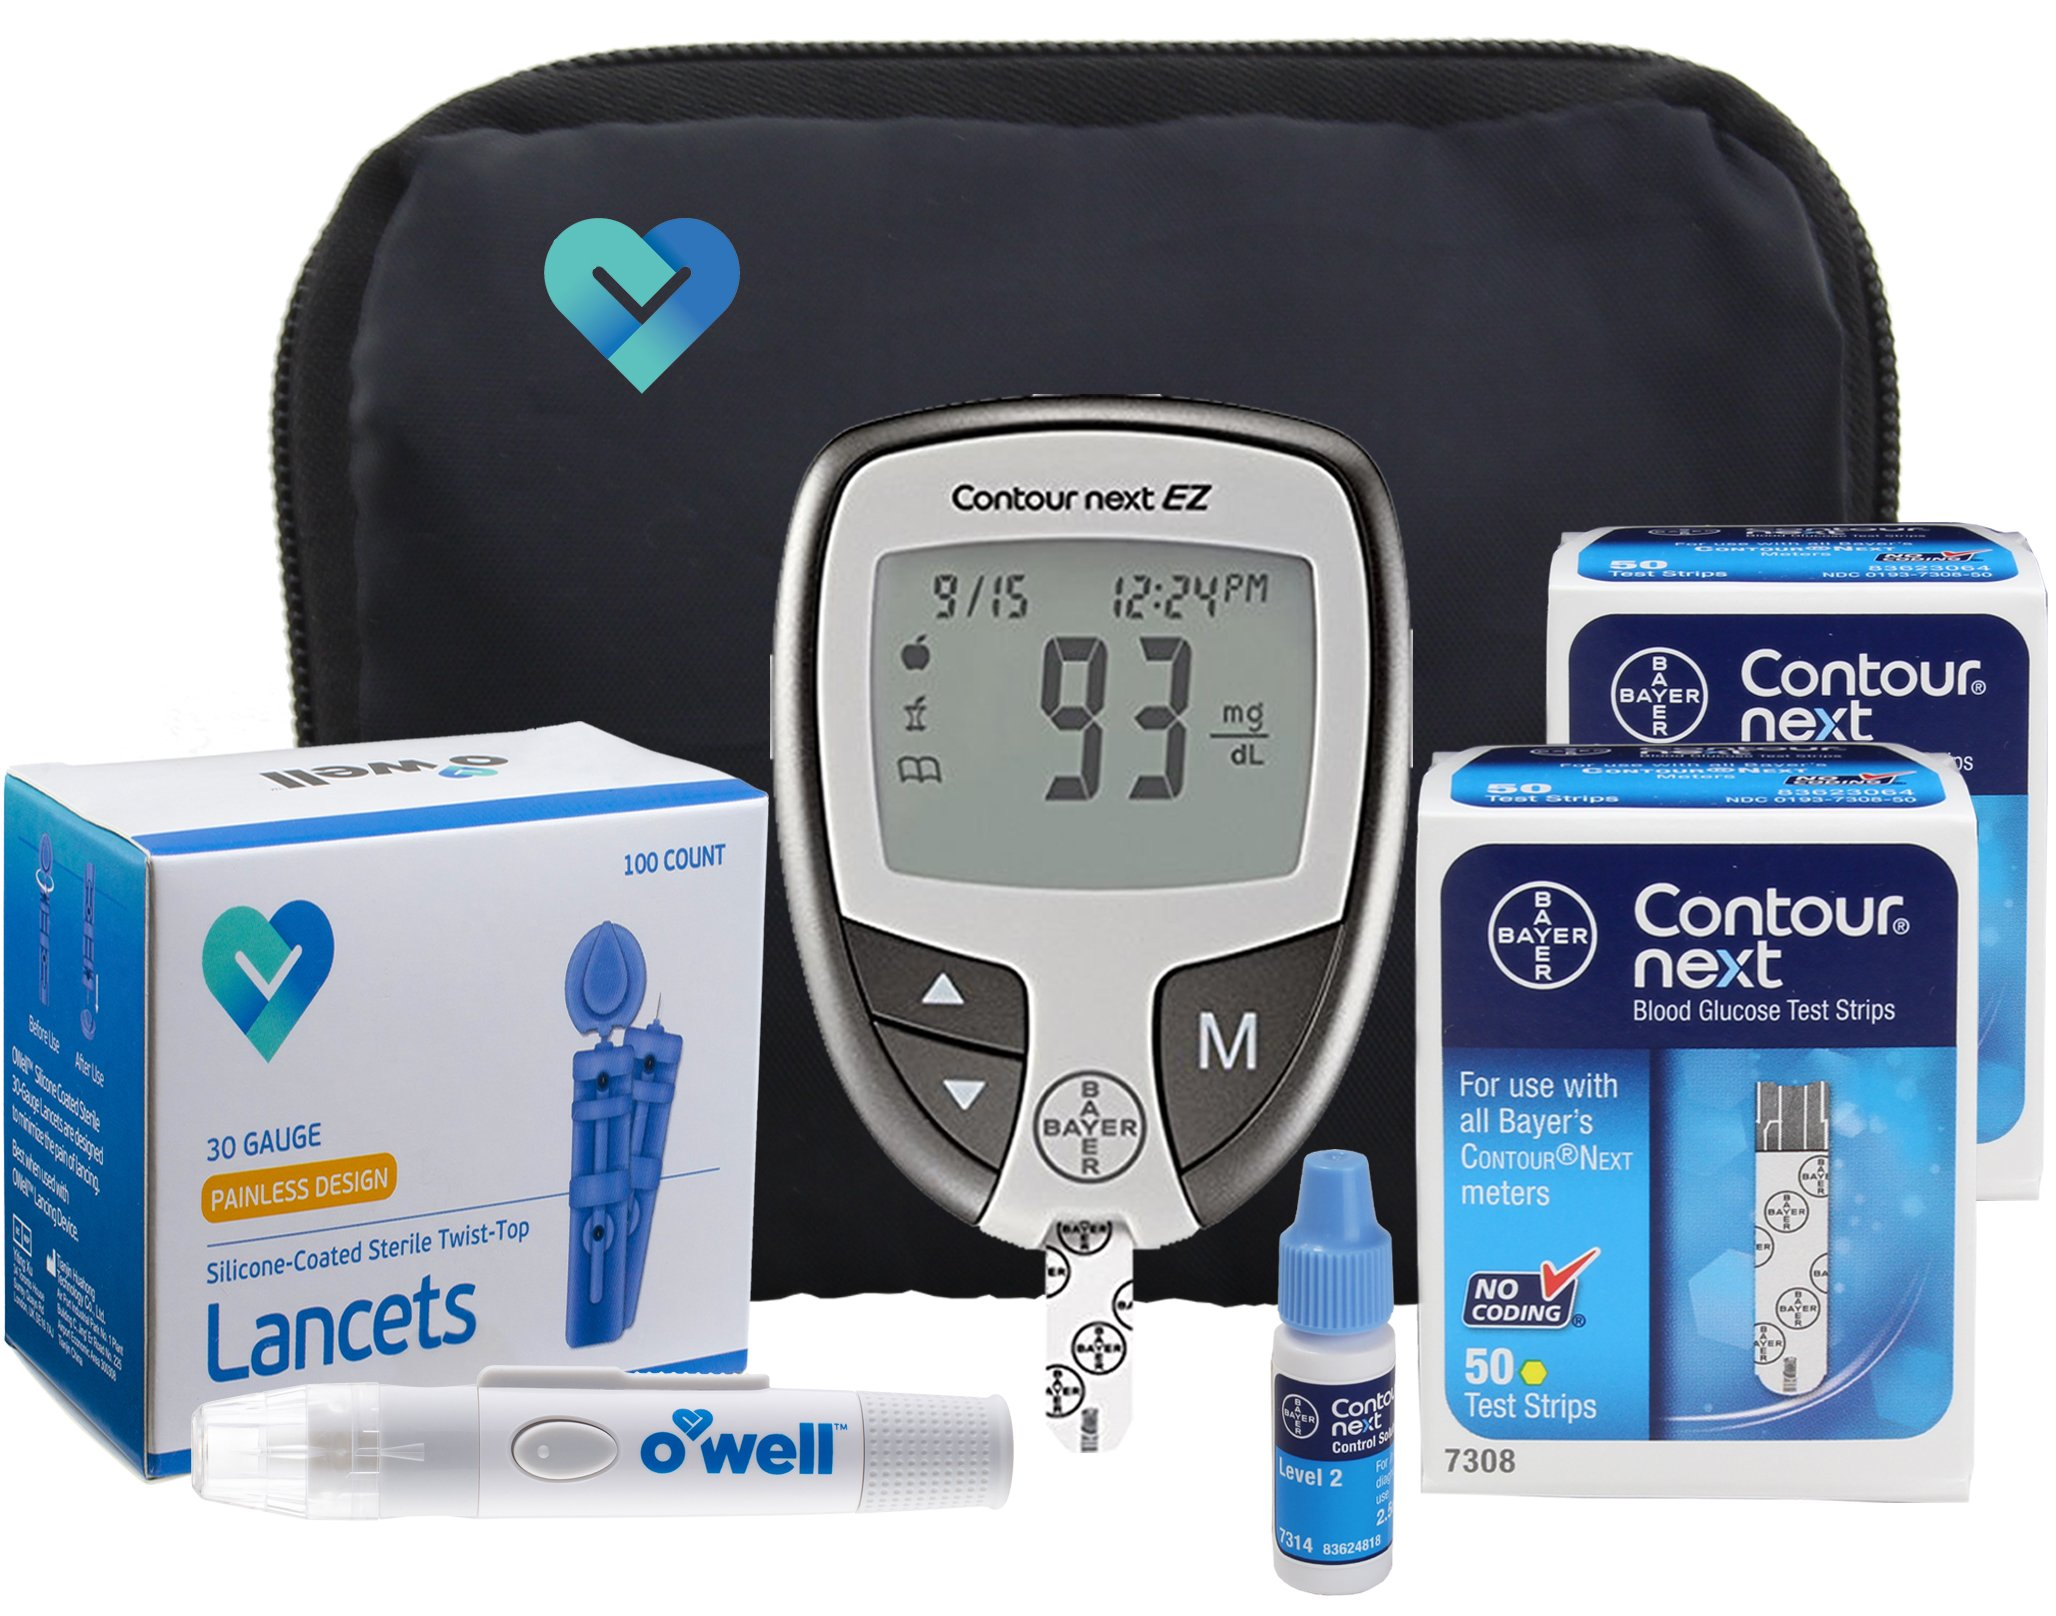 Contour NEXT Blood Sugar Testing Kit, 100 Count | Contour NEXT EZ Meter, 100 Contour NEXT Blood Glucose Test Strips, 100 Lancets, Lancing Device, Control Solution, Manual's, Log Book & Carry Case